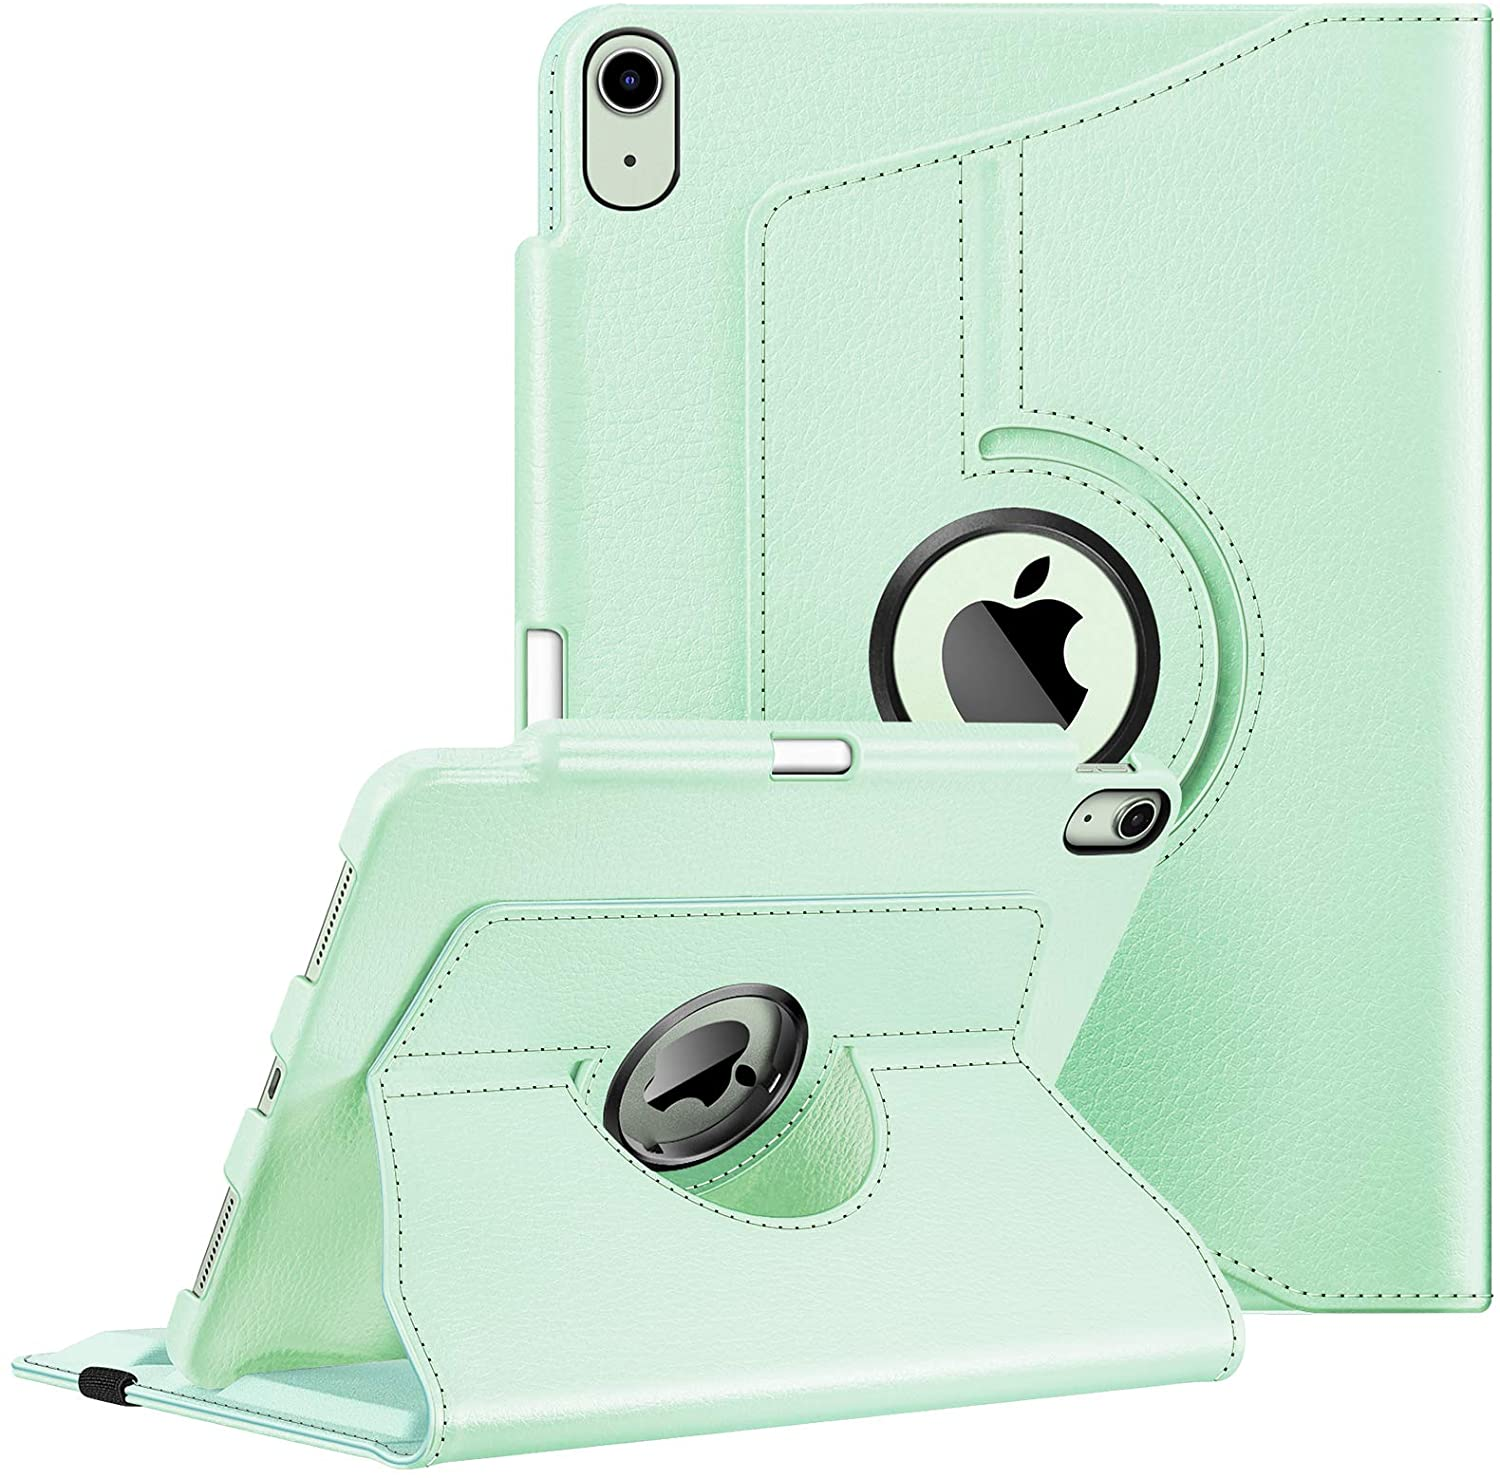 Fintie Case for iPad Air 4 10.9 Inch 2020 with Pencil Holder [Support 2nd Gen Pencil Charging] - 360 Degree Rotating Stand Cover with Auto Sleep/Wake for iPad Air 4th Generation, Green